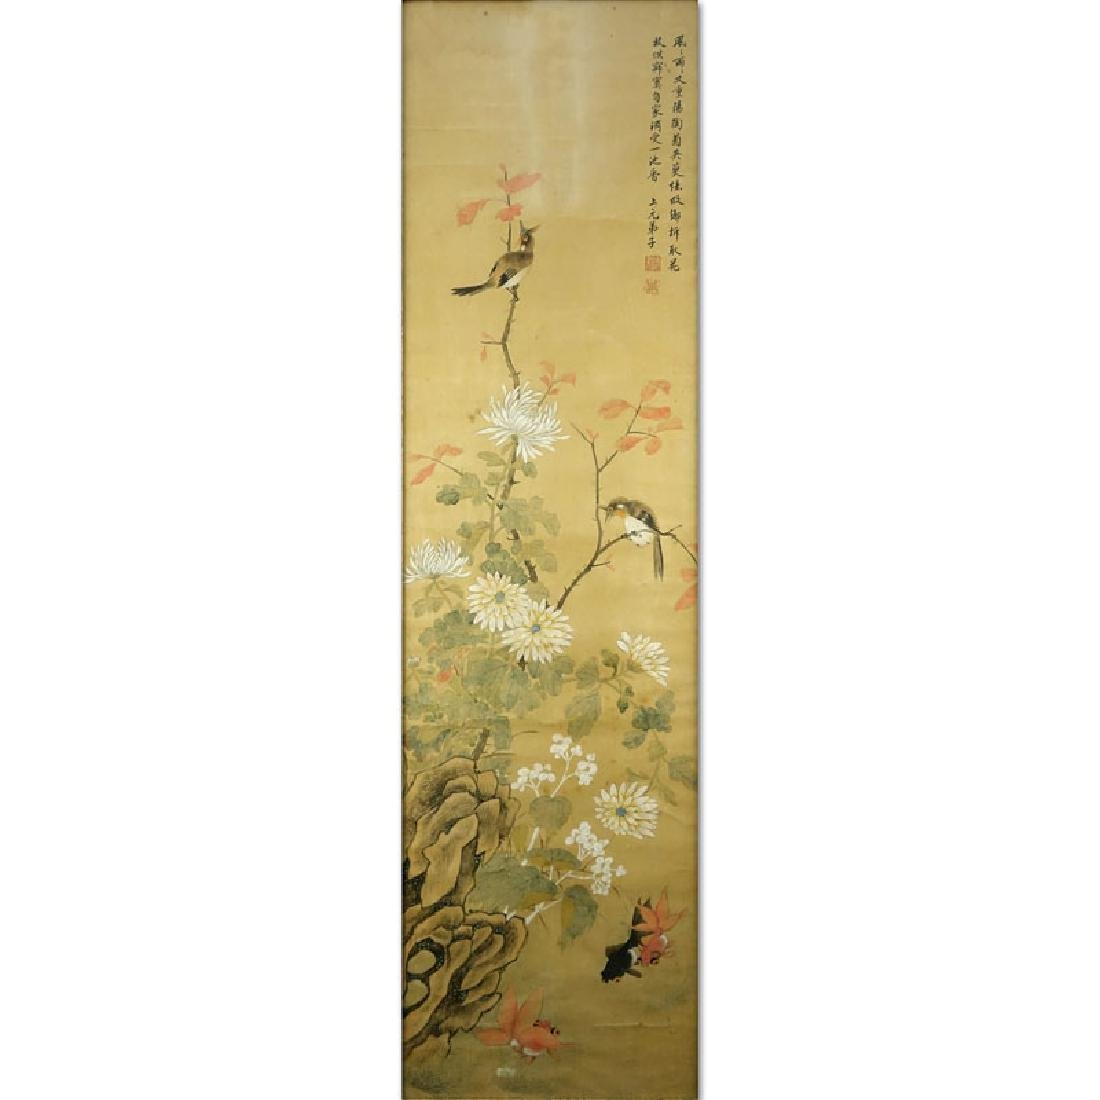 Late 19th or Early 20th Century Chinese Watercolor on